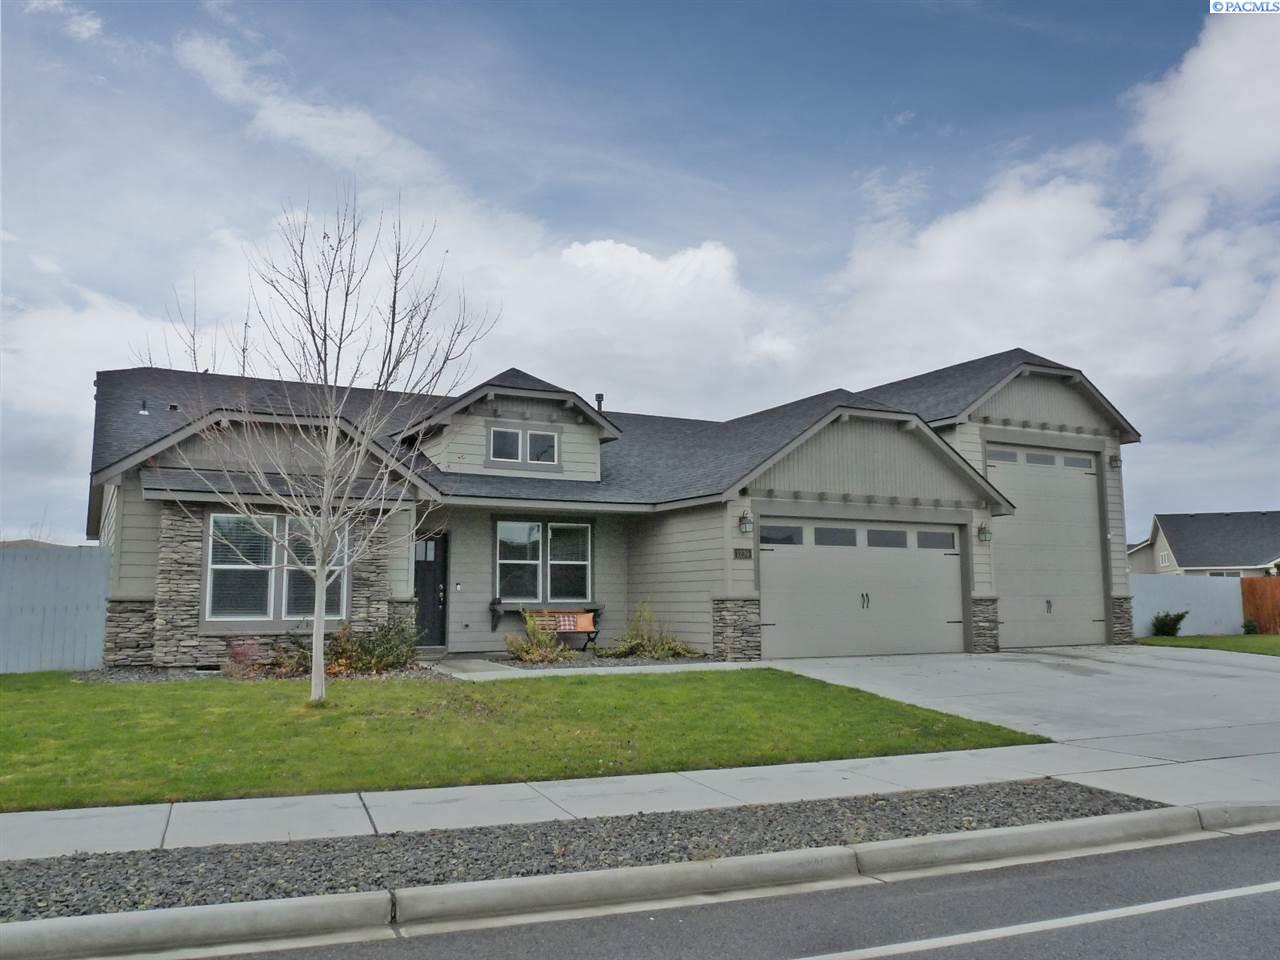 Single Family Homes for Sale at 1239 Belmont Blvd West Richland, Washington 99353 United States